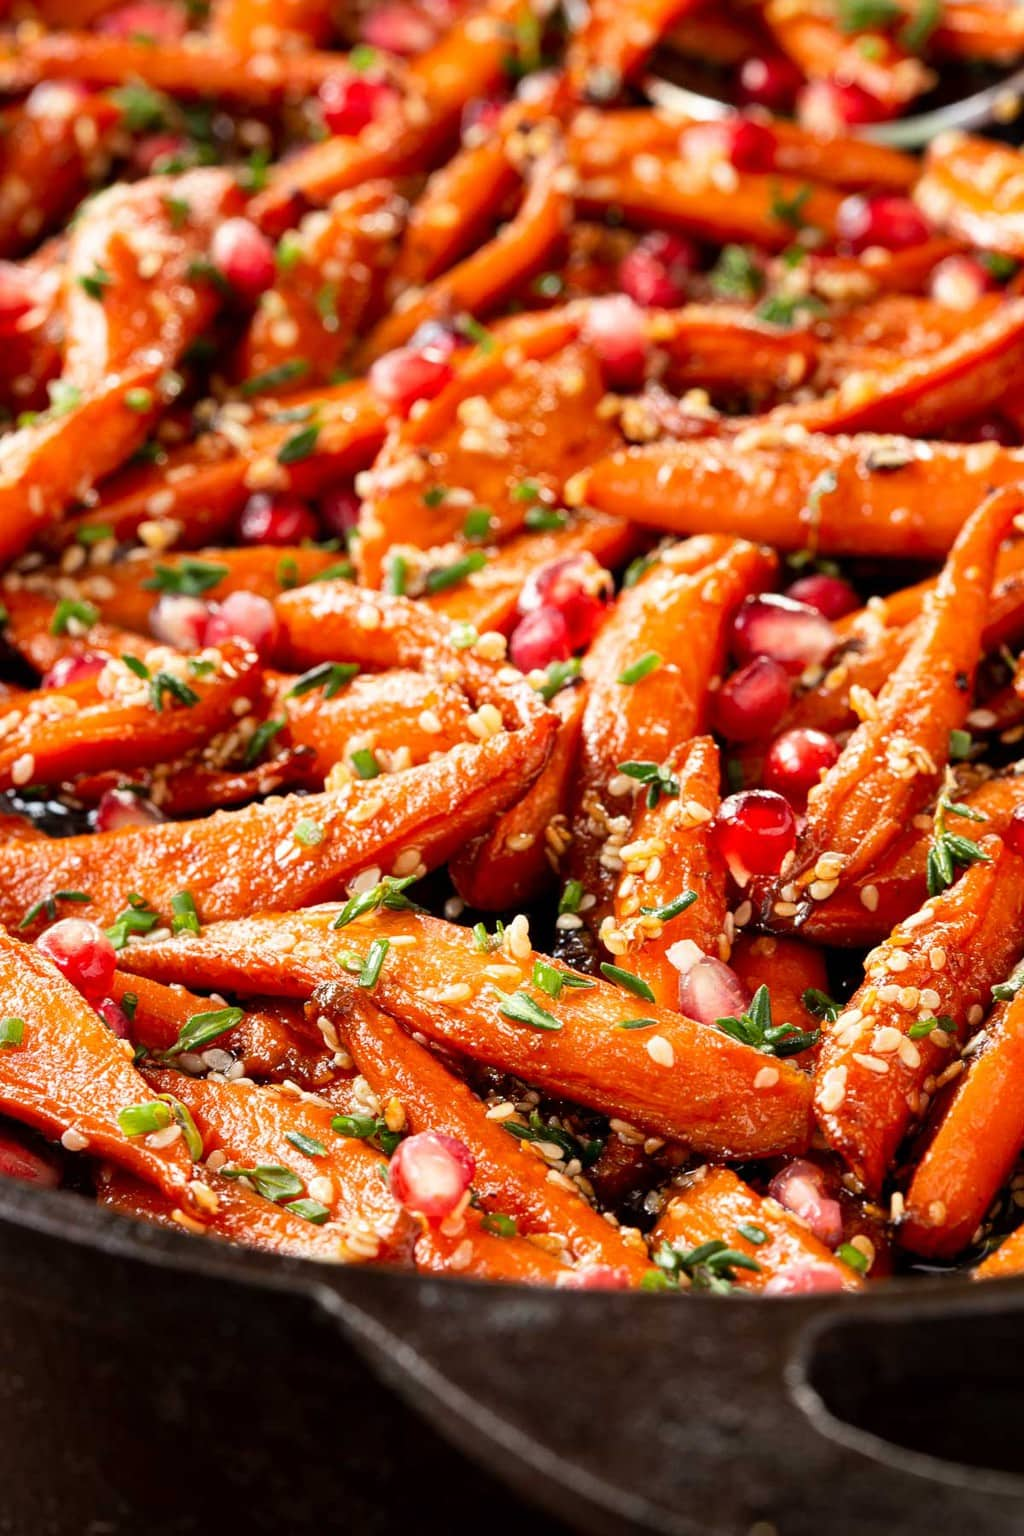 Vertical extreme closeup photo of a cast iron pan filled with Honey Maple Roasted Carrots.